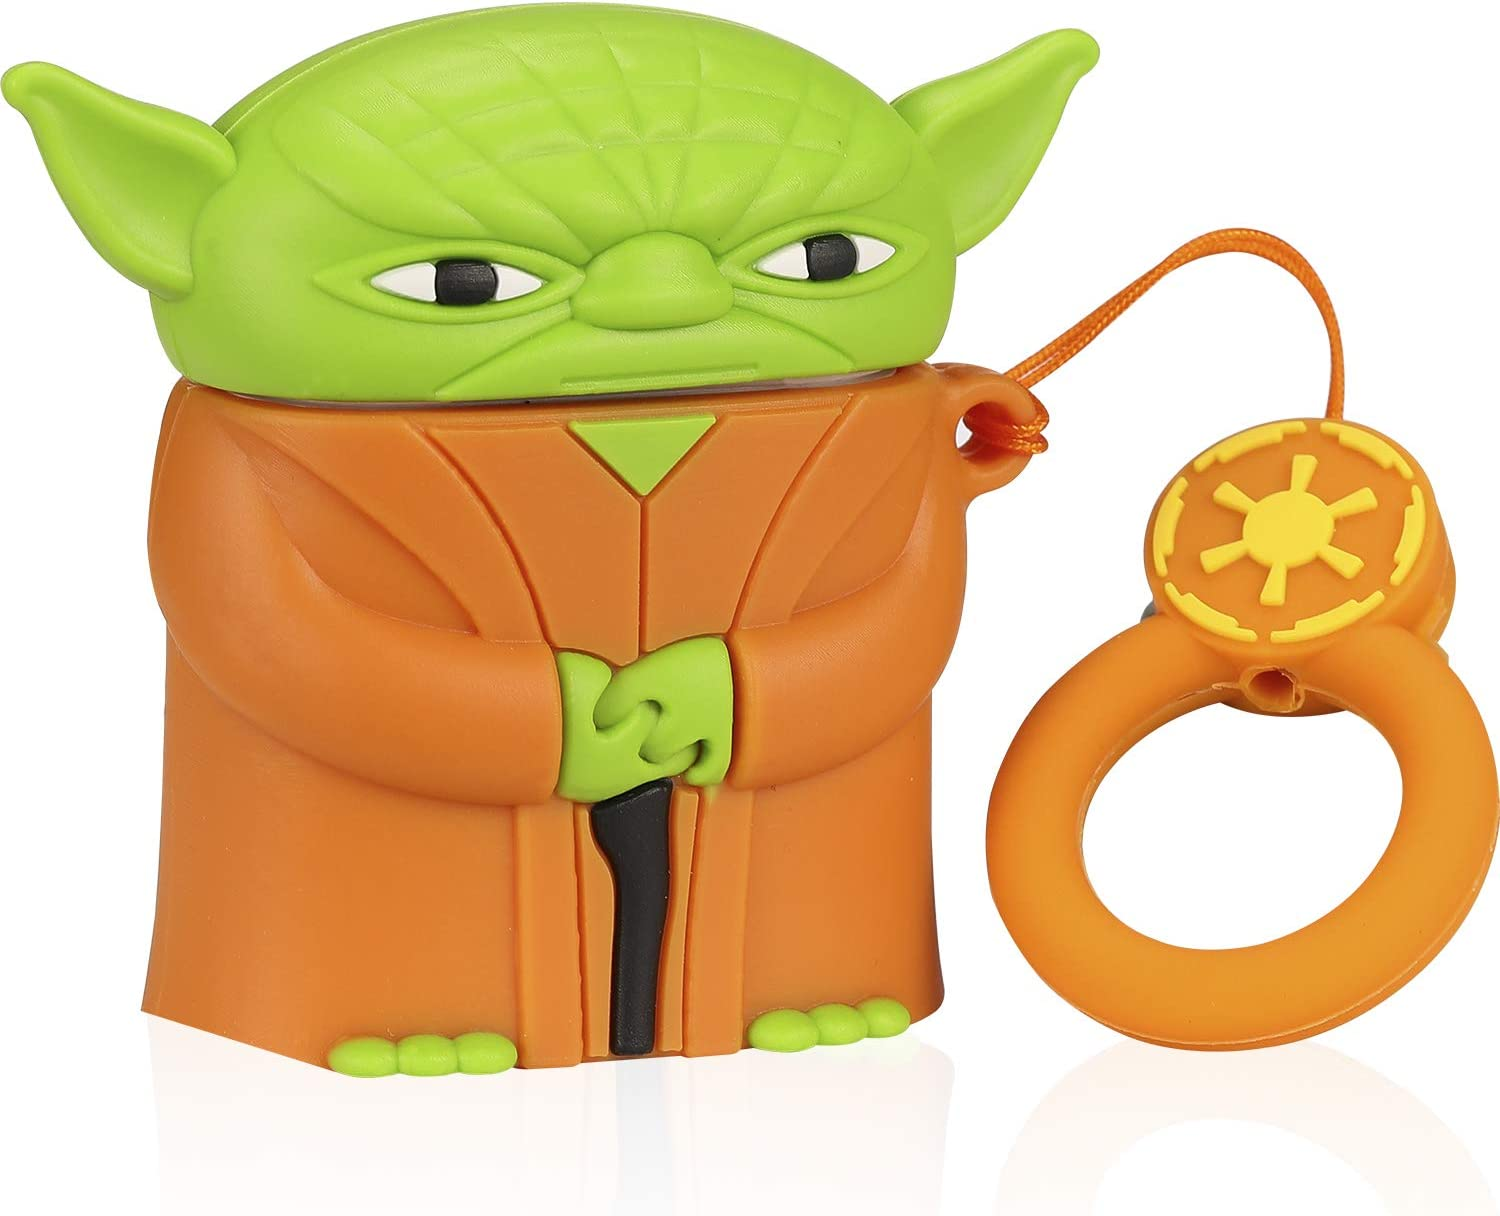 Fun Yoda Airpods Case Cover Airpods 2 1 2nd Generation Star